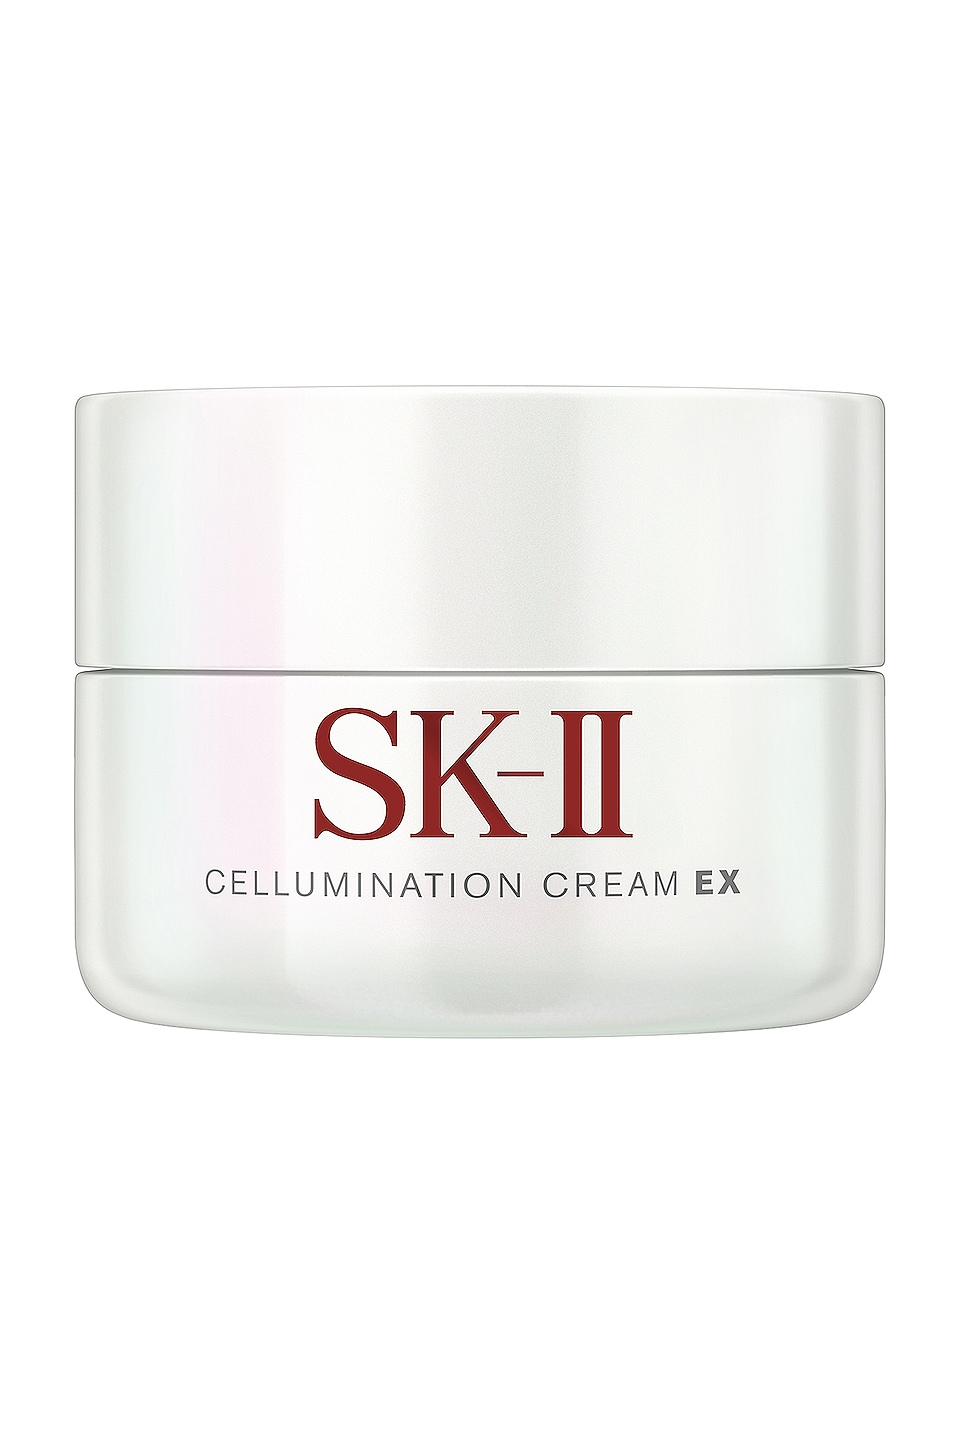 SK-II Cellumination Cream